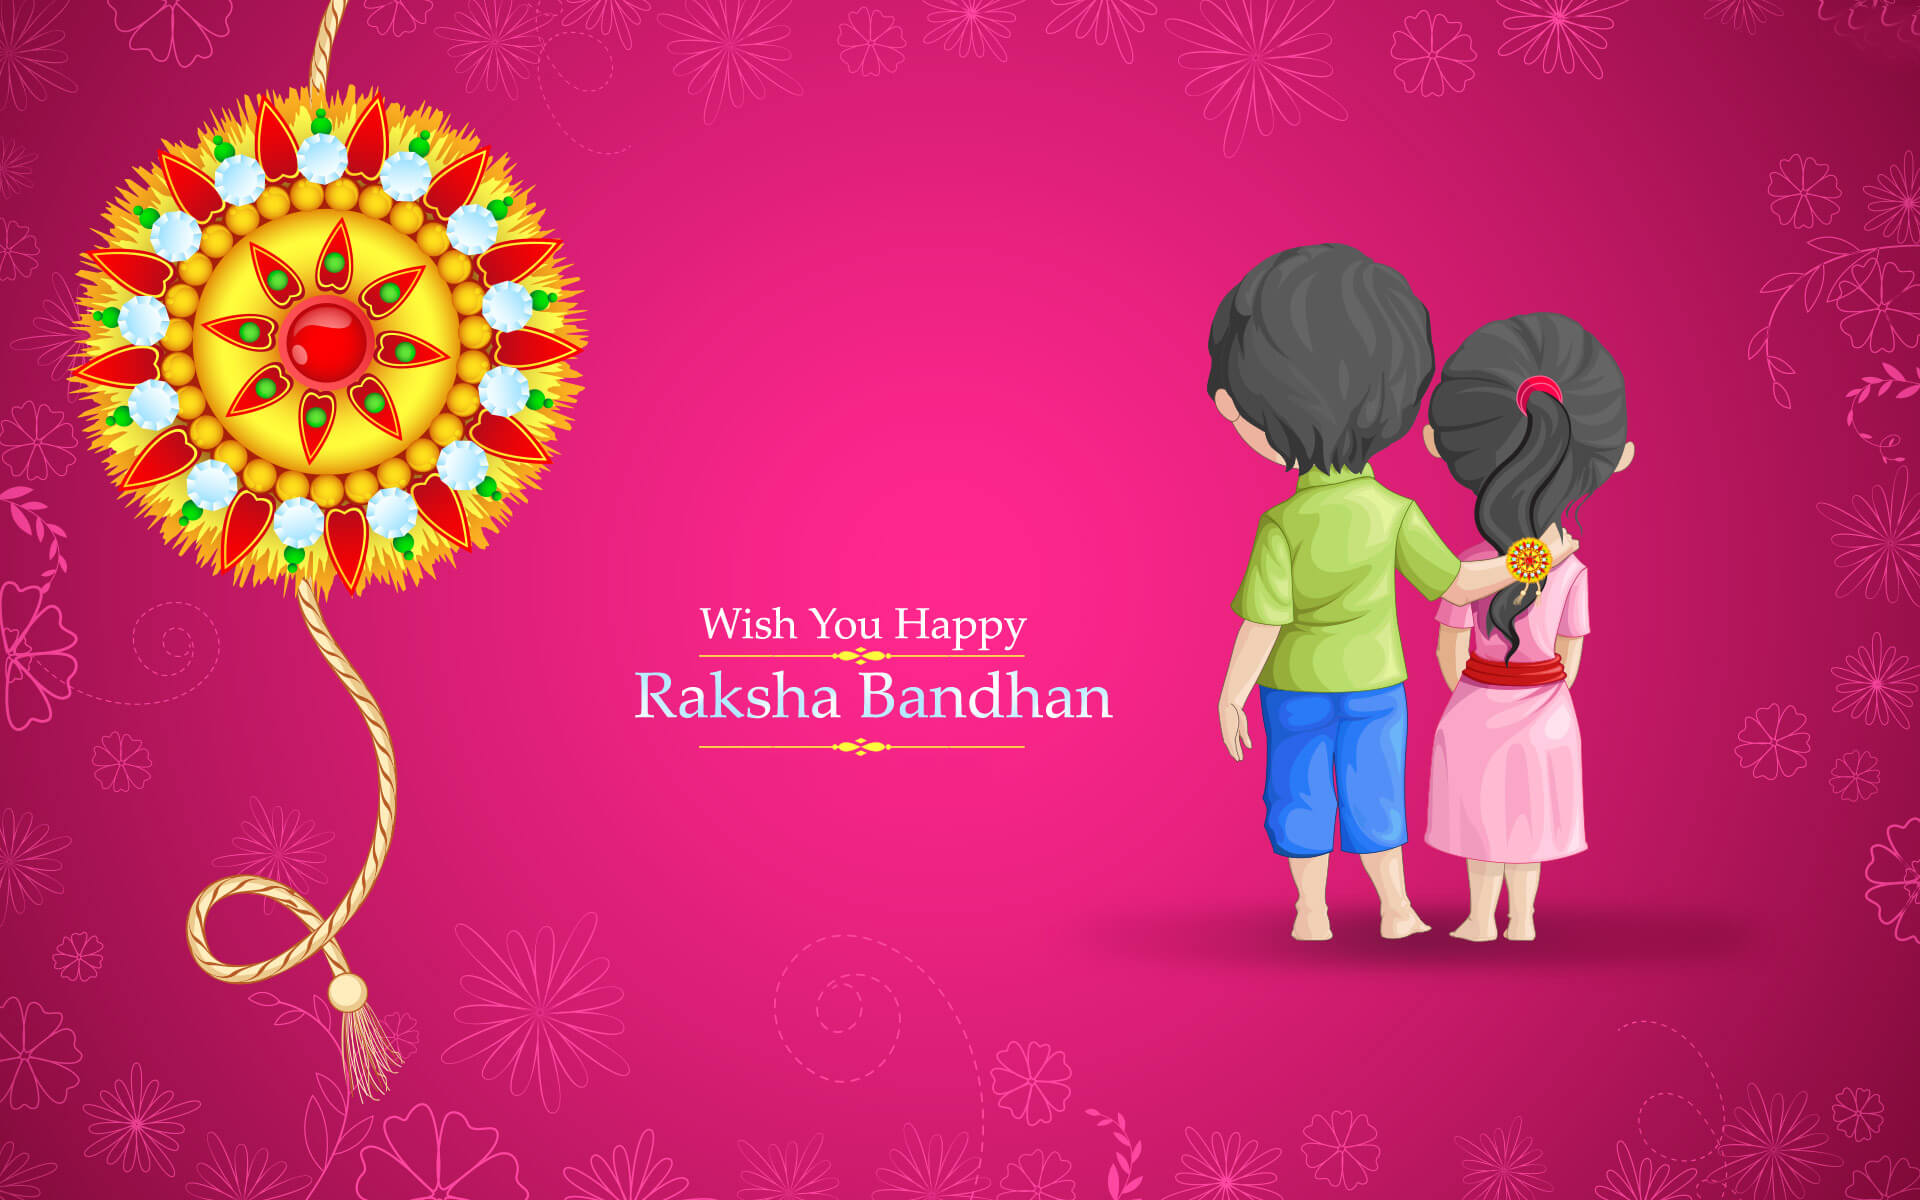 wish you happy raksha bandhan hd desktop wallpaper